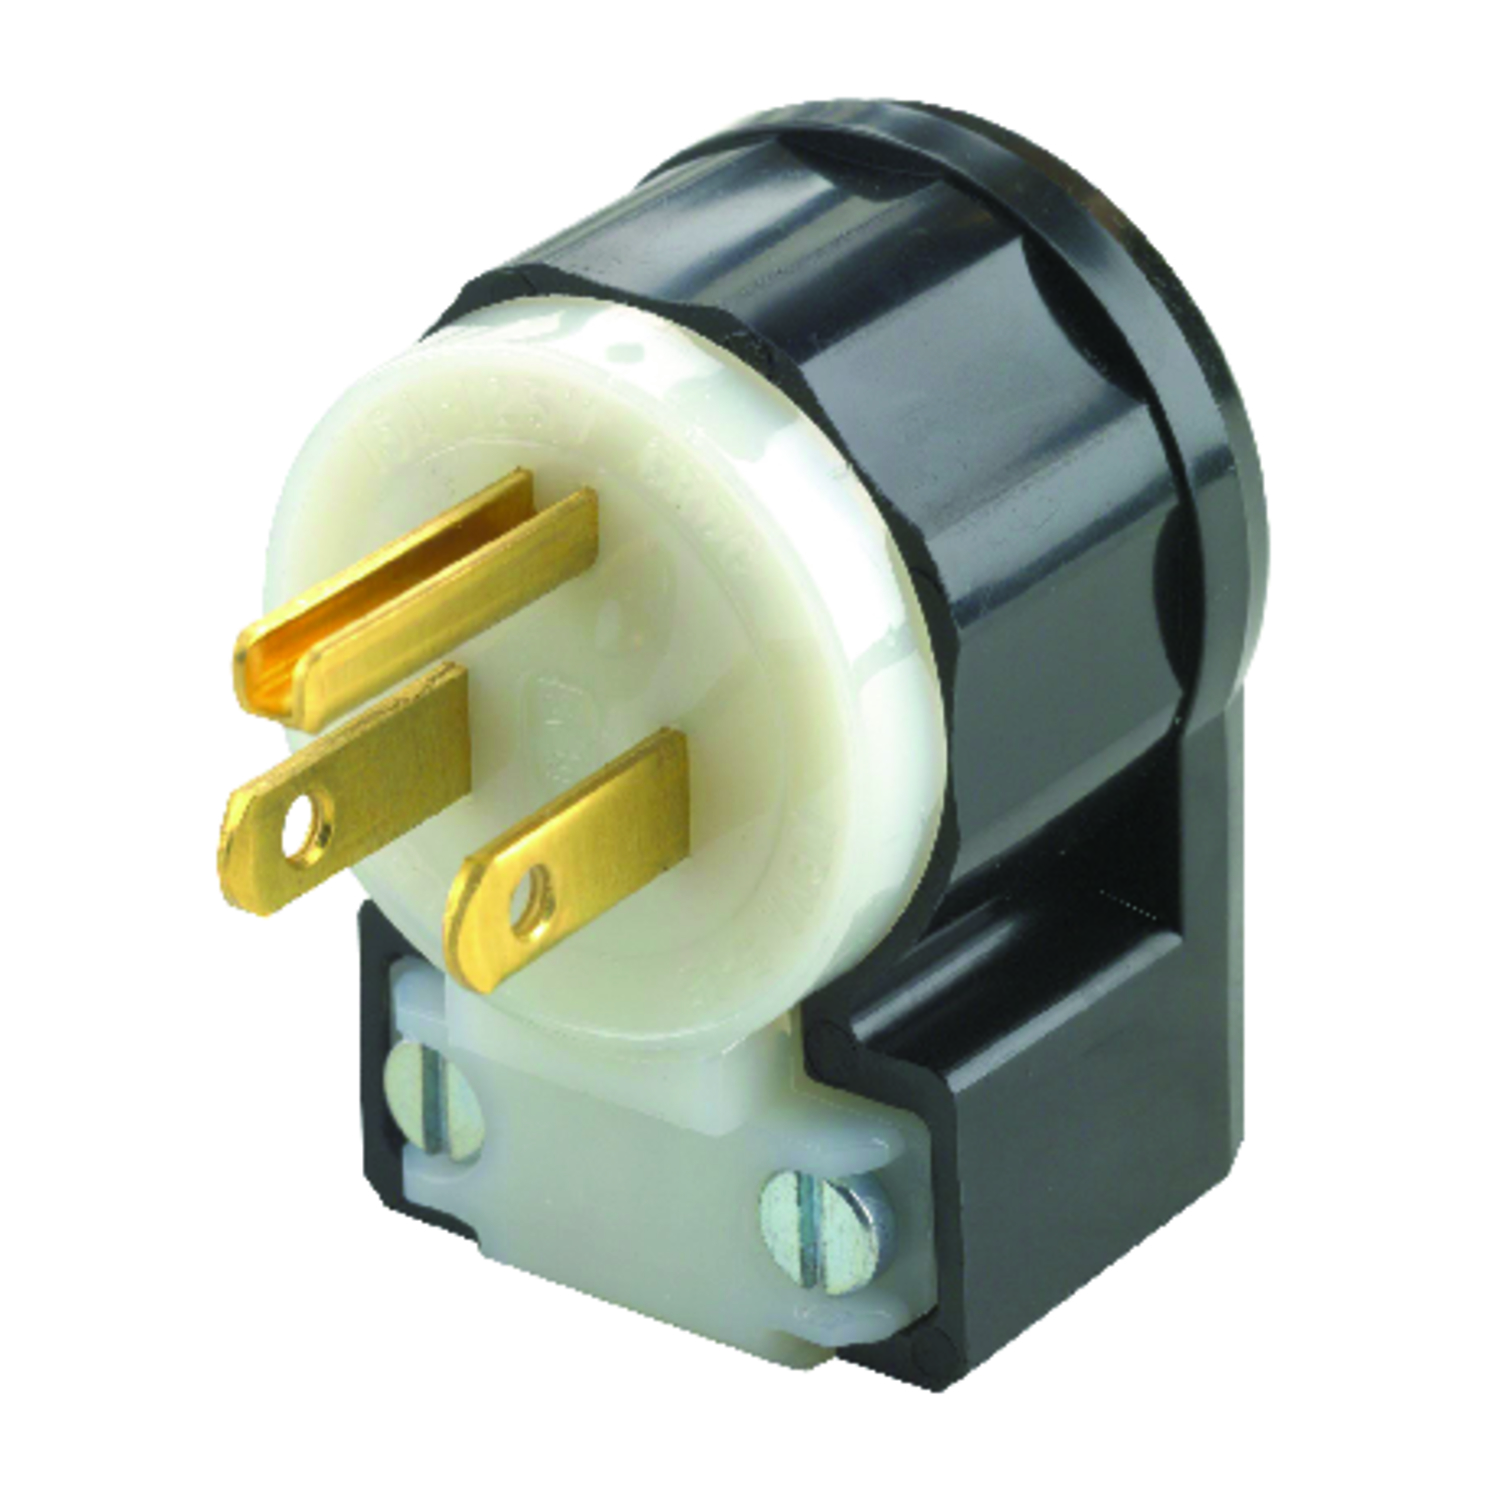 Leviton  Industrial  Nylon  Grounding  Plug  5-15P  18-10 AWG 2 Pole 3 Wire